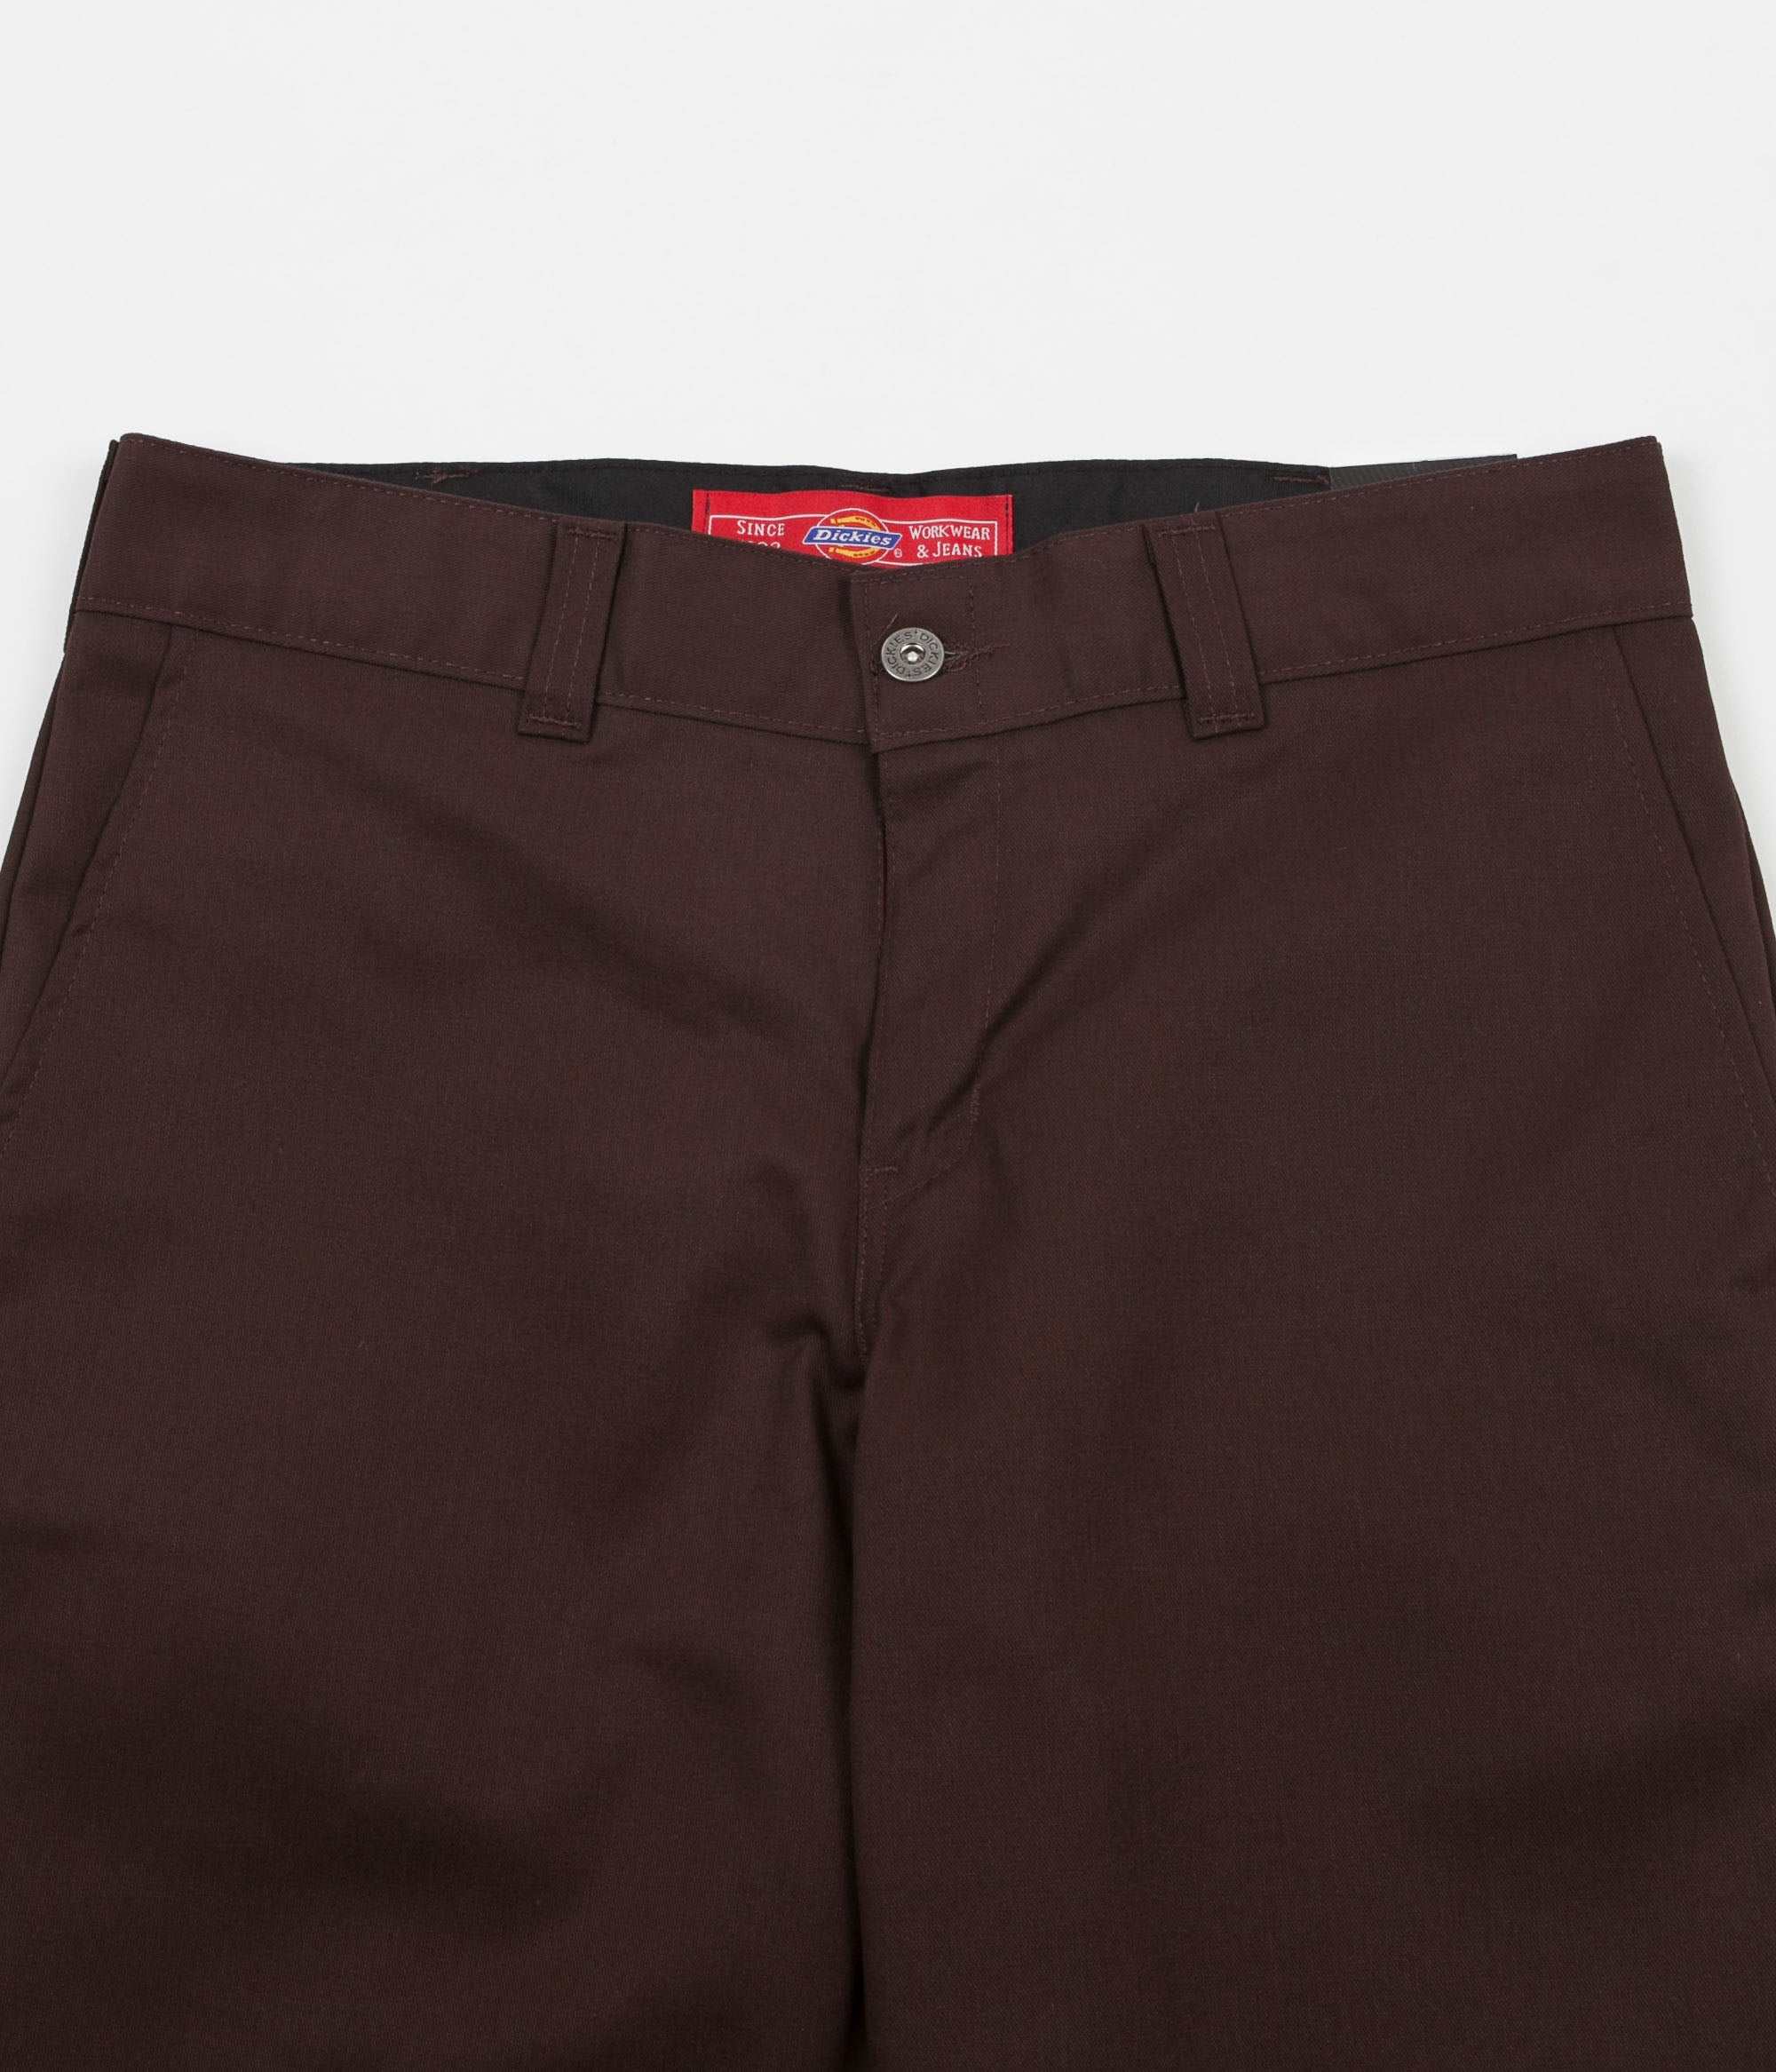 Dickies 894 Industrial Work Short - Chocolate Brown